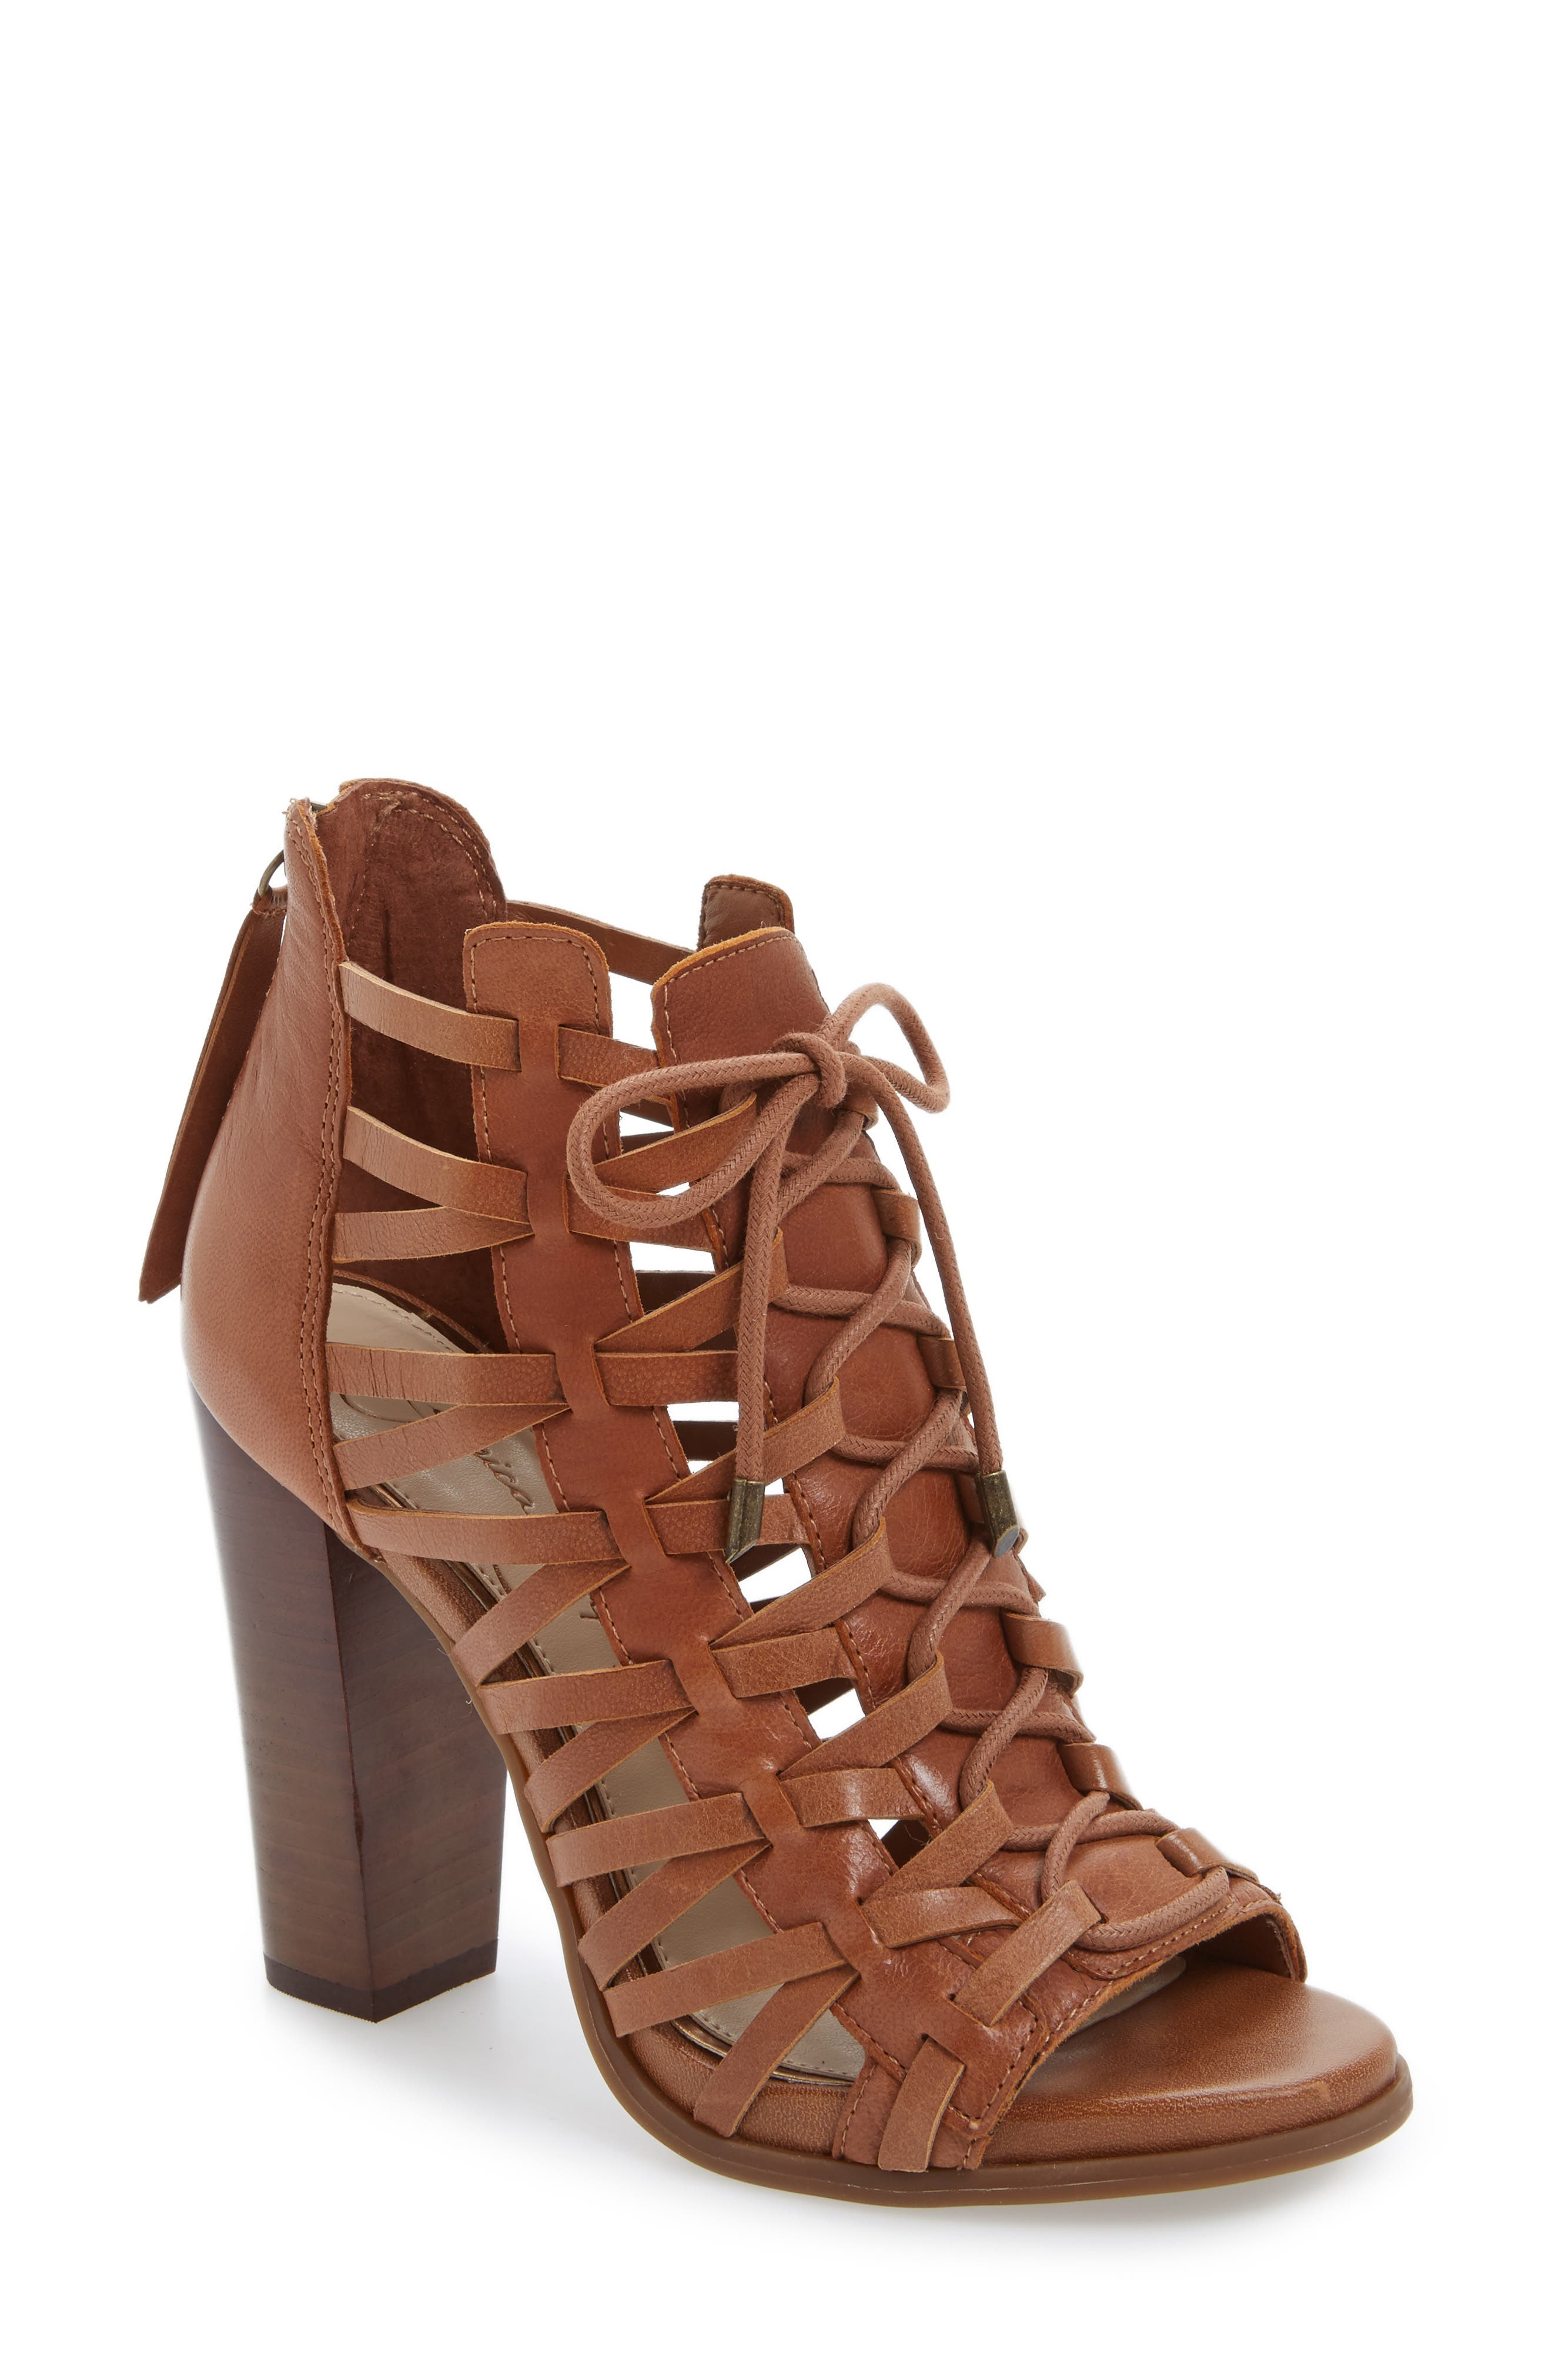 Alternate Image 1 Selected - Jessica Simpson Riana Lace-Up Bootie (Women)